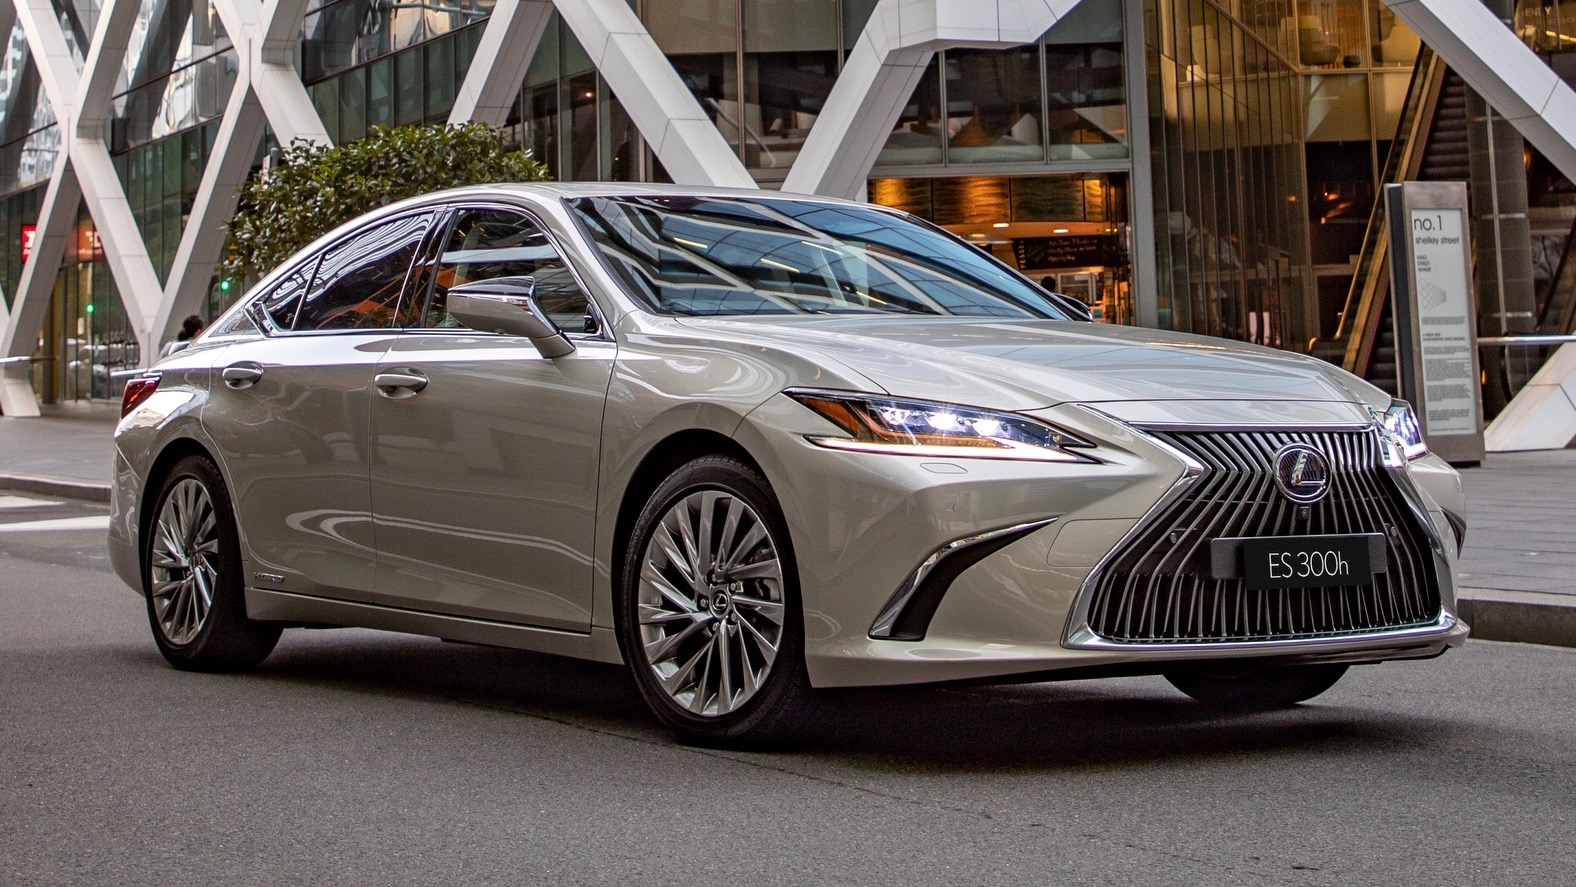 2019 Lexus ES300h Sports Luxury front